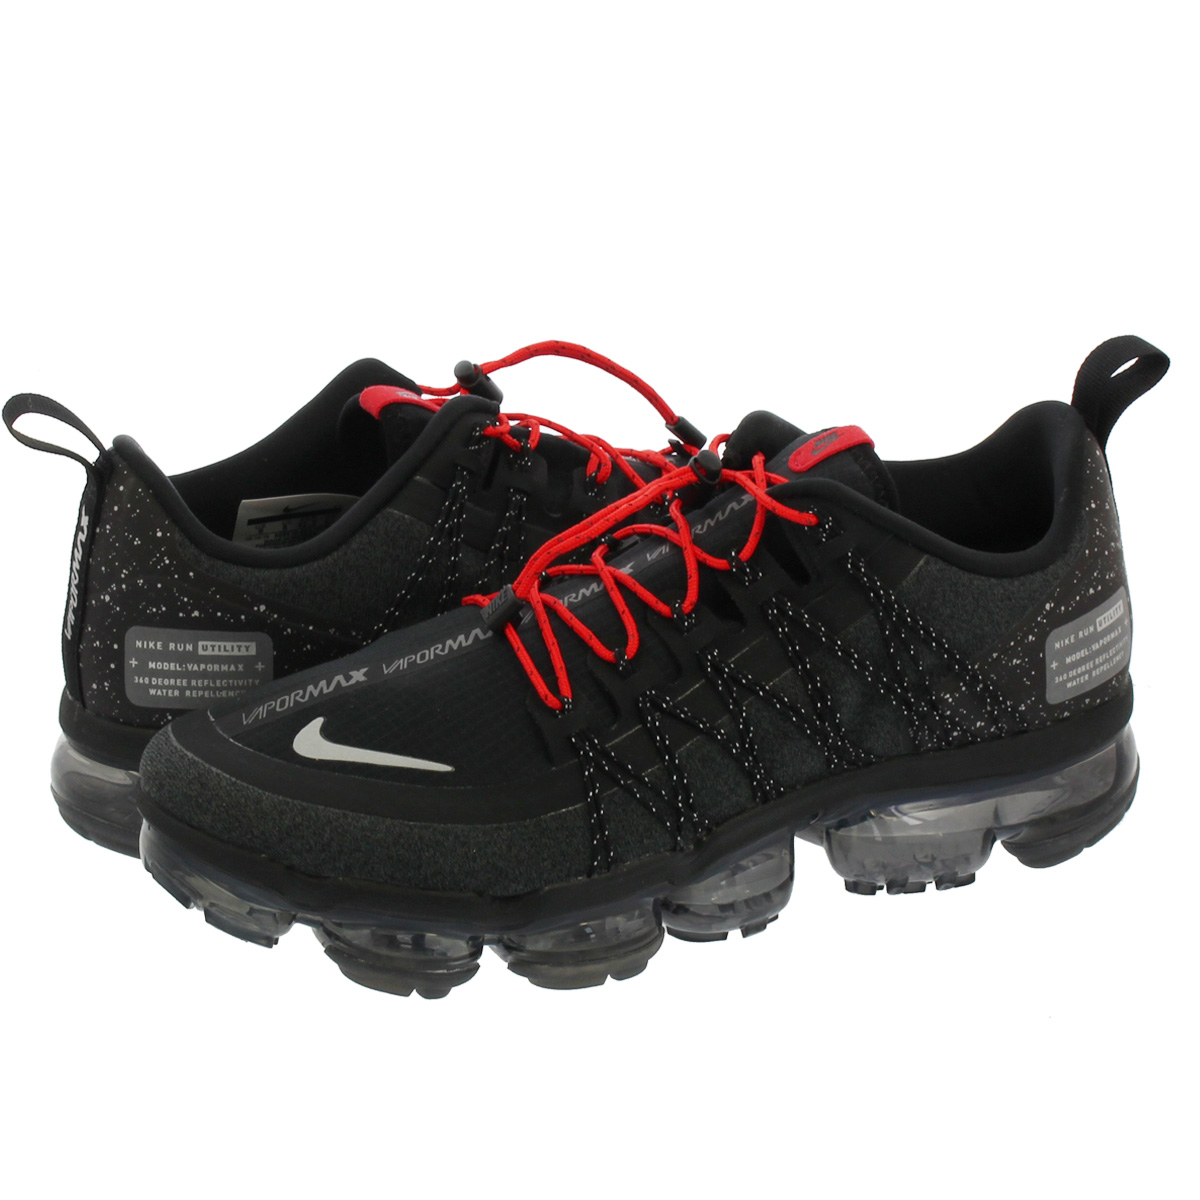 the latest c33e2 7ffe8 NIKE AIR VAPORMAX RUN UTILITY Nike vapor max orchid utility BLACK/REFLECT  SILVER/ANTHRACITE ...